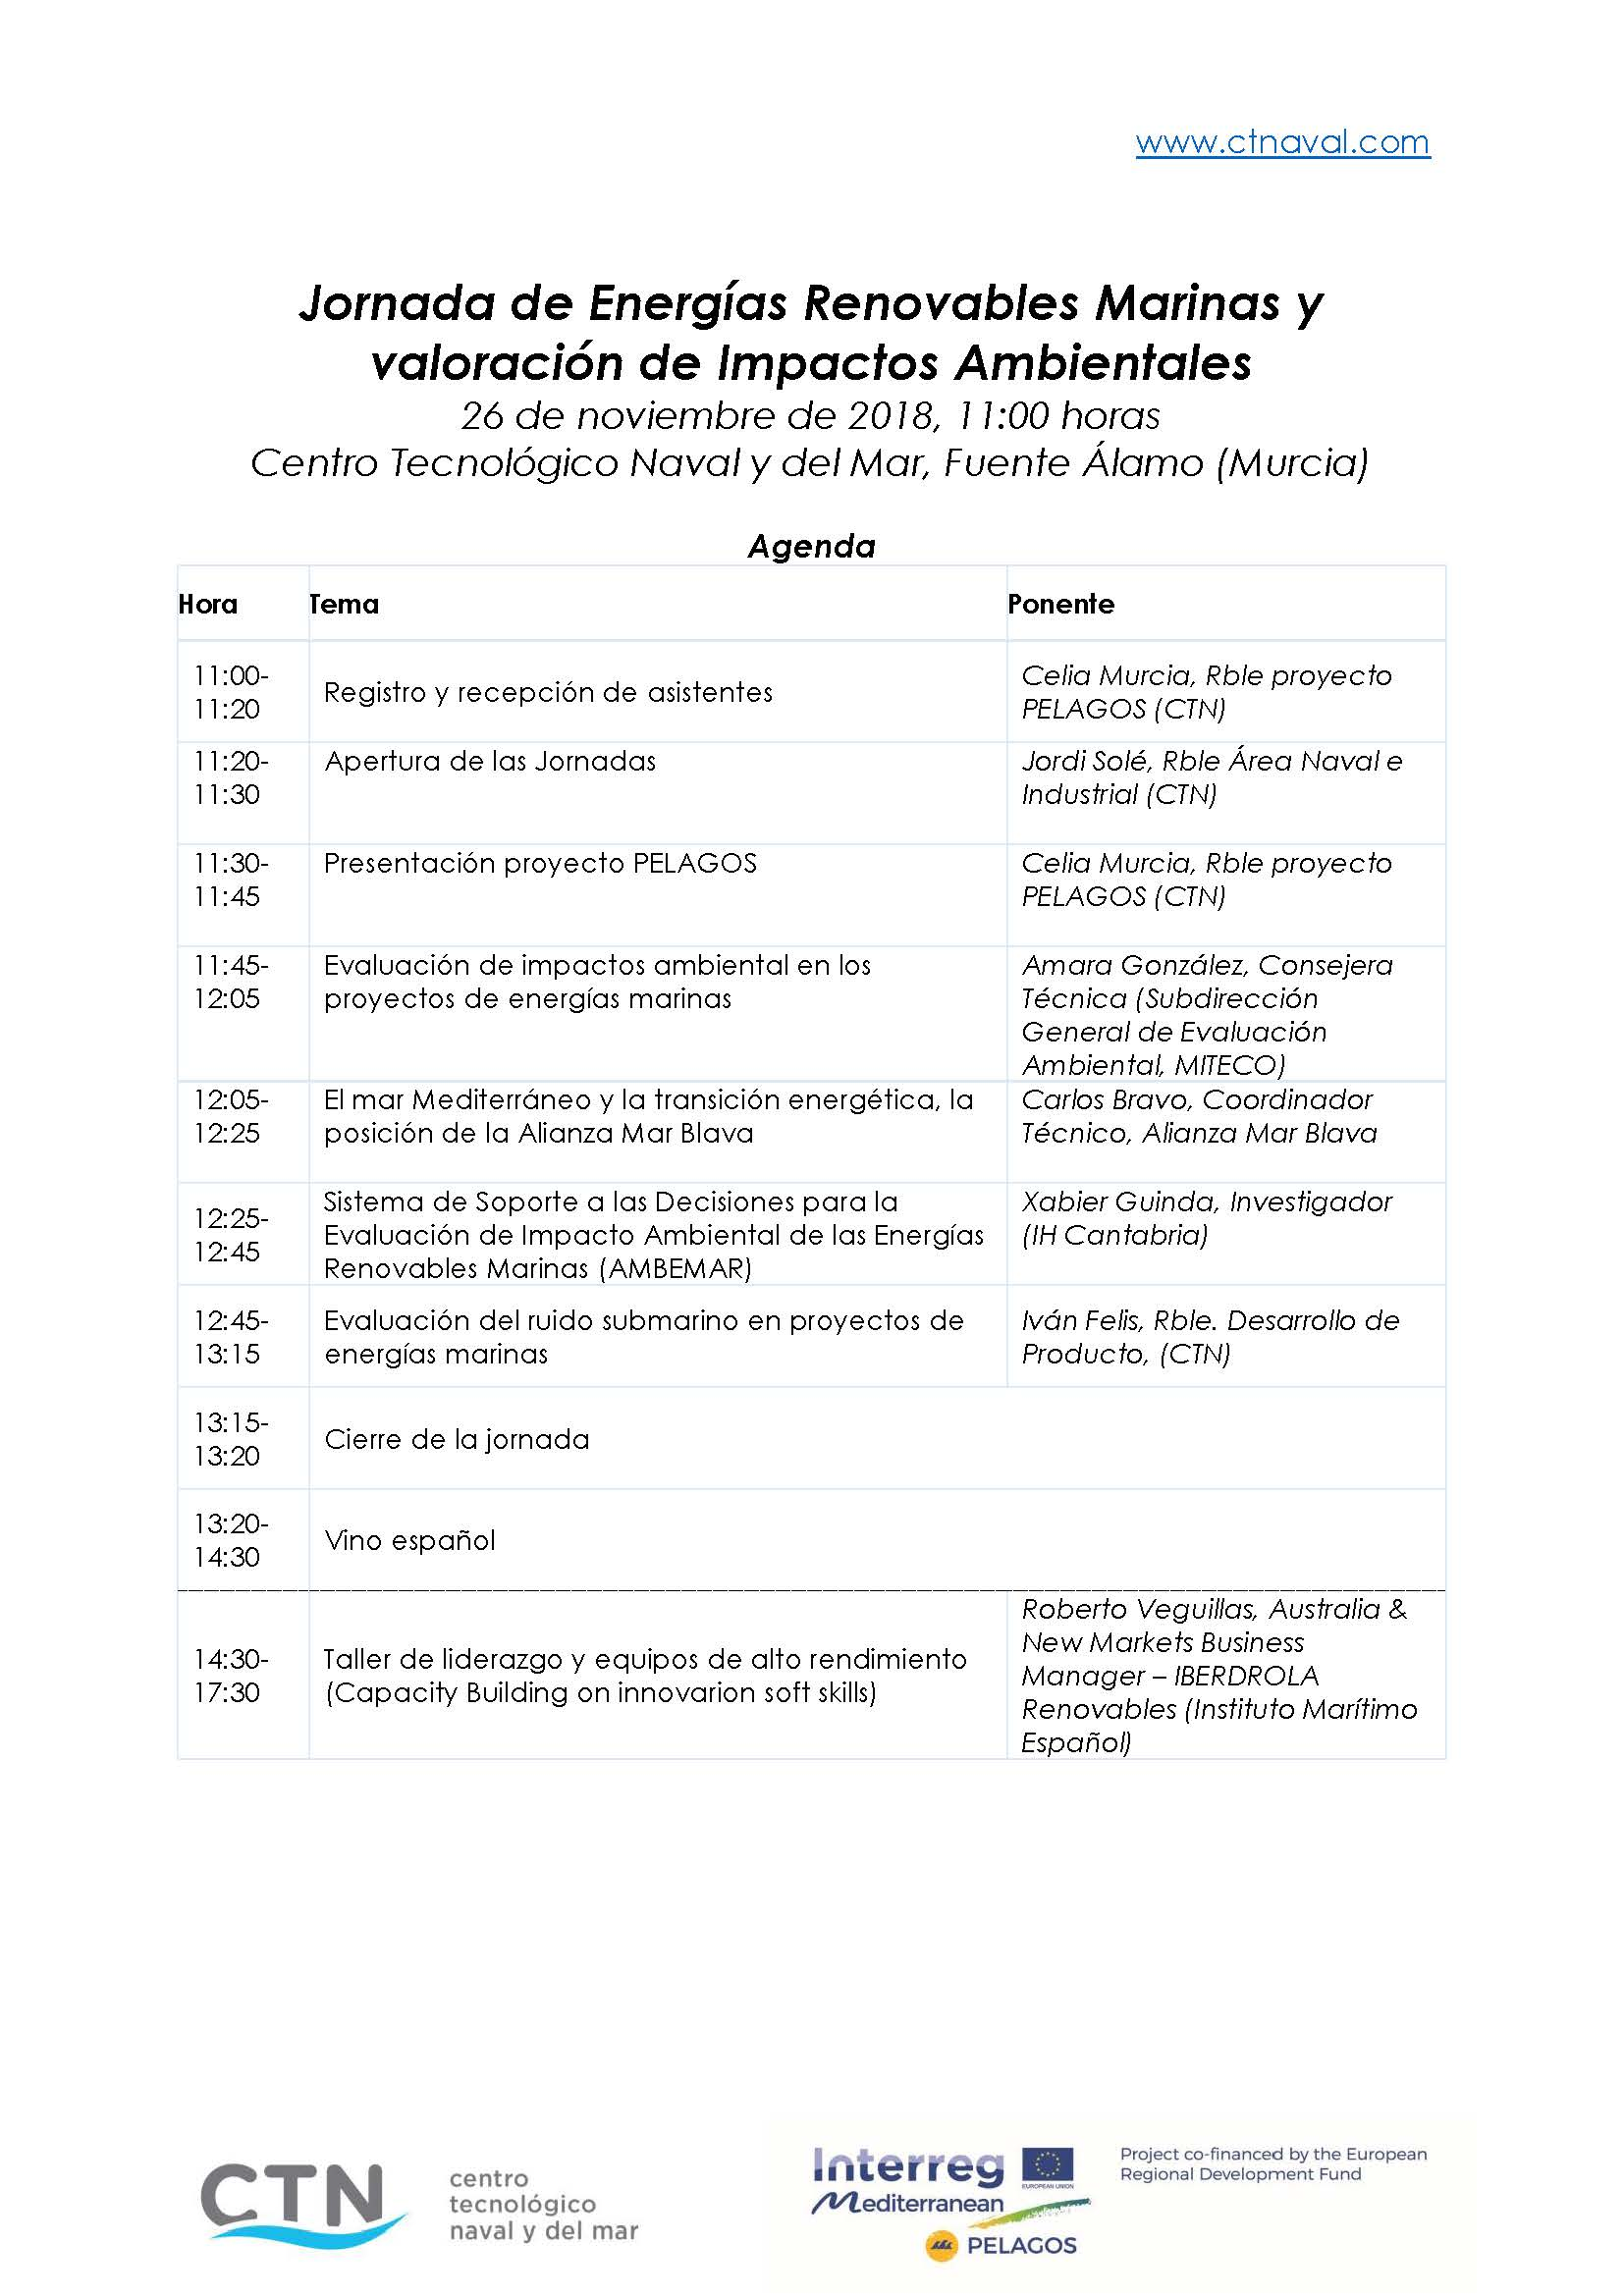 Agenda_PELAGOS_Nov2018-Workshop